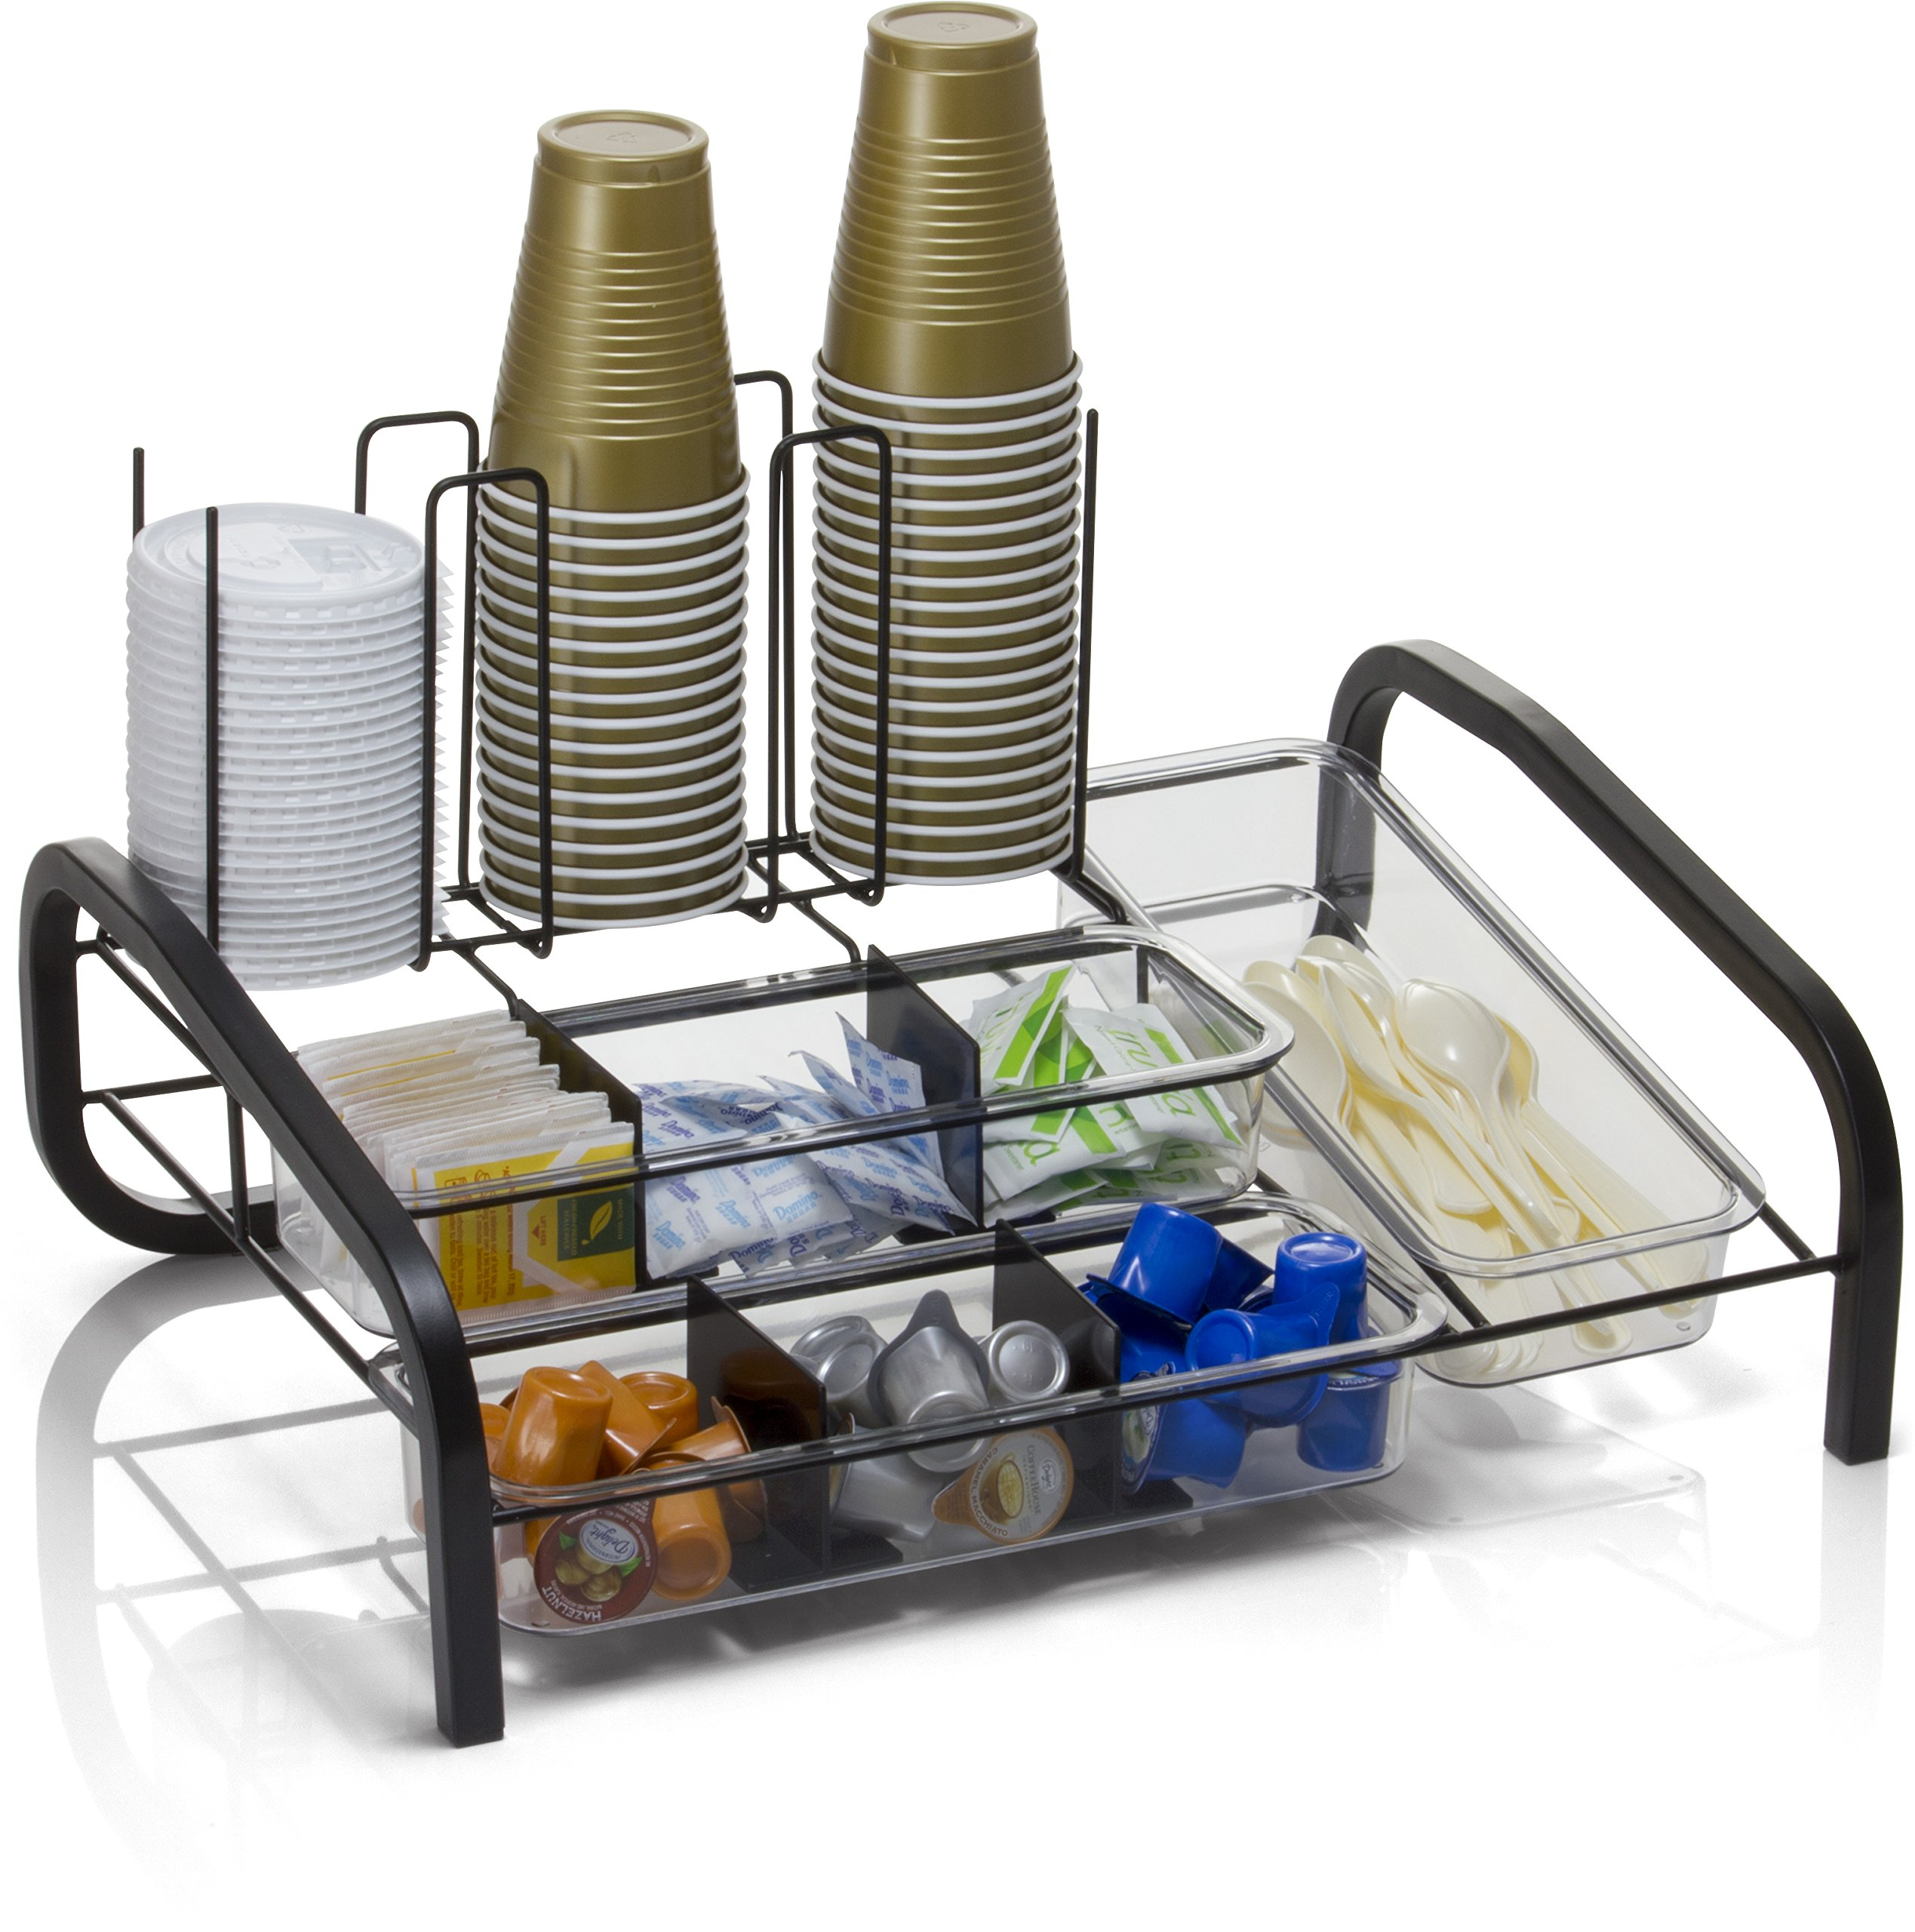 Officemate BreakCentral Multi Breakroom Organizer and Coffee Pod Holder, Black (28002) by Officemate